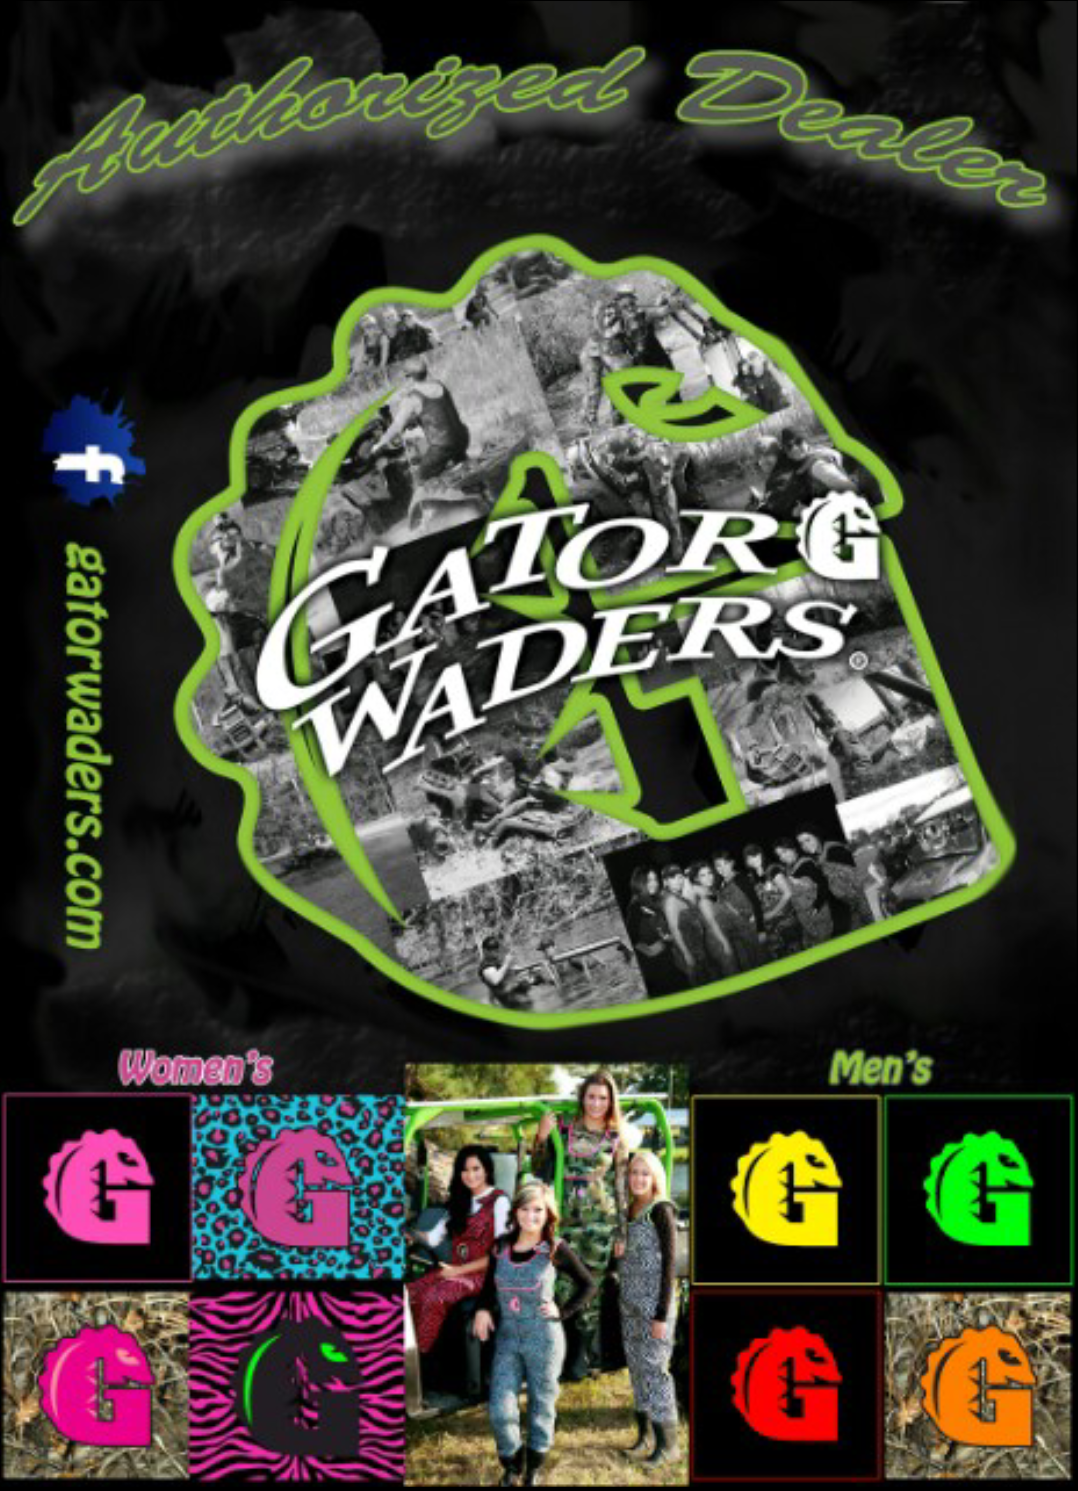 Gator Waders - Men & Women